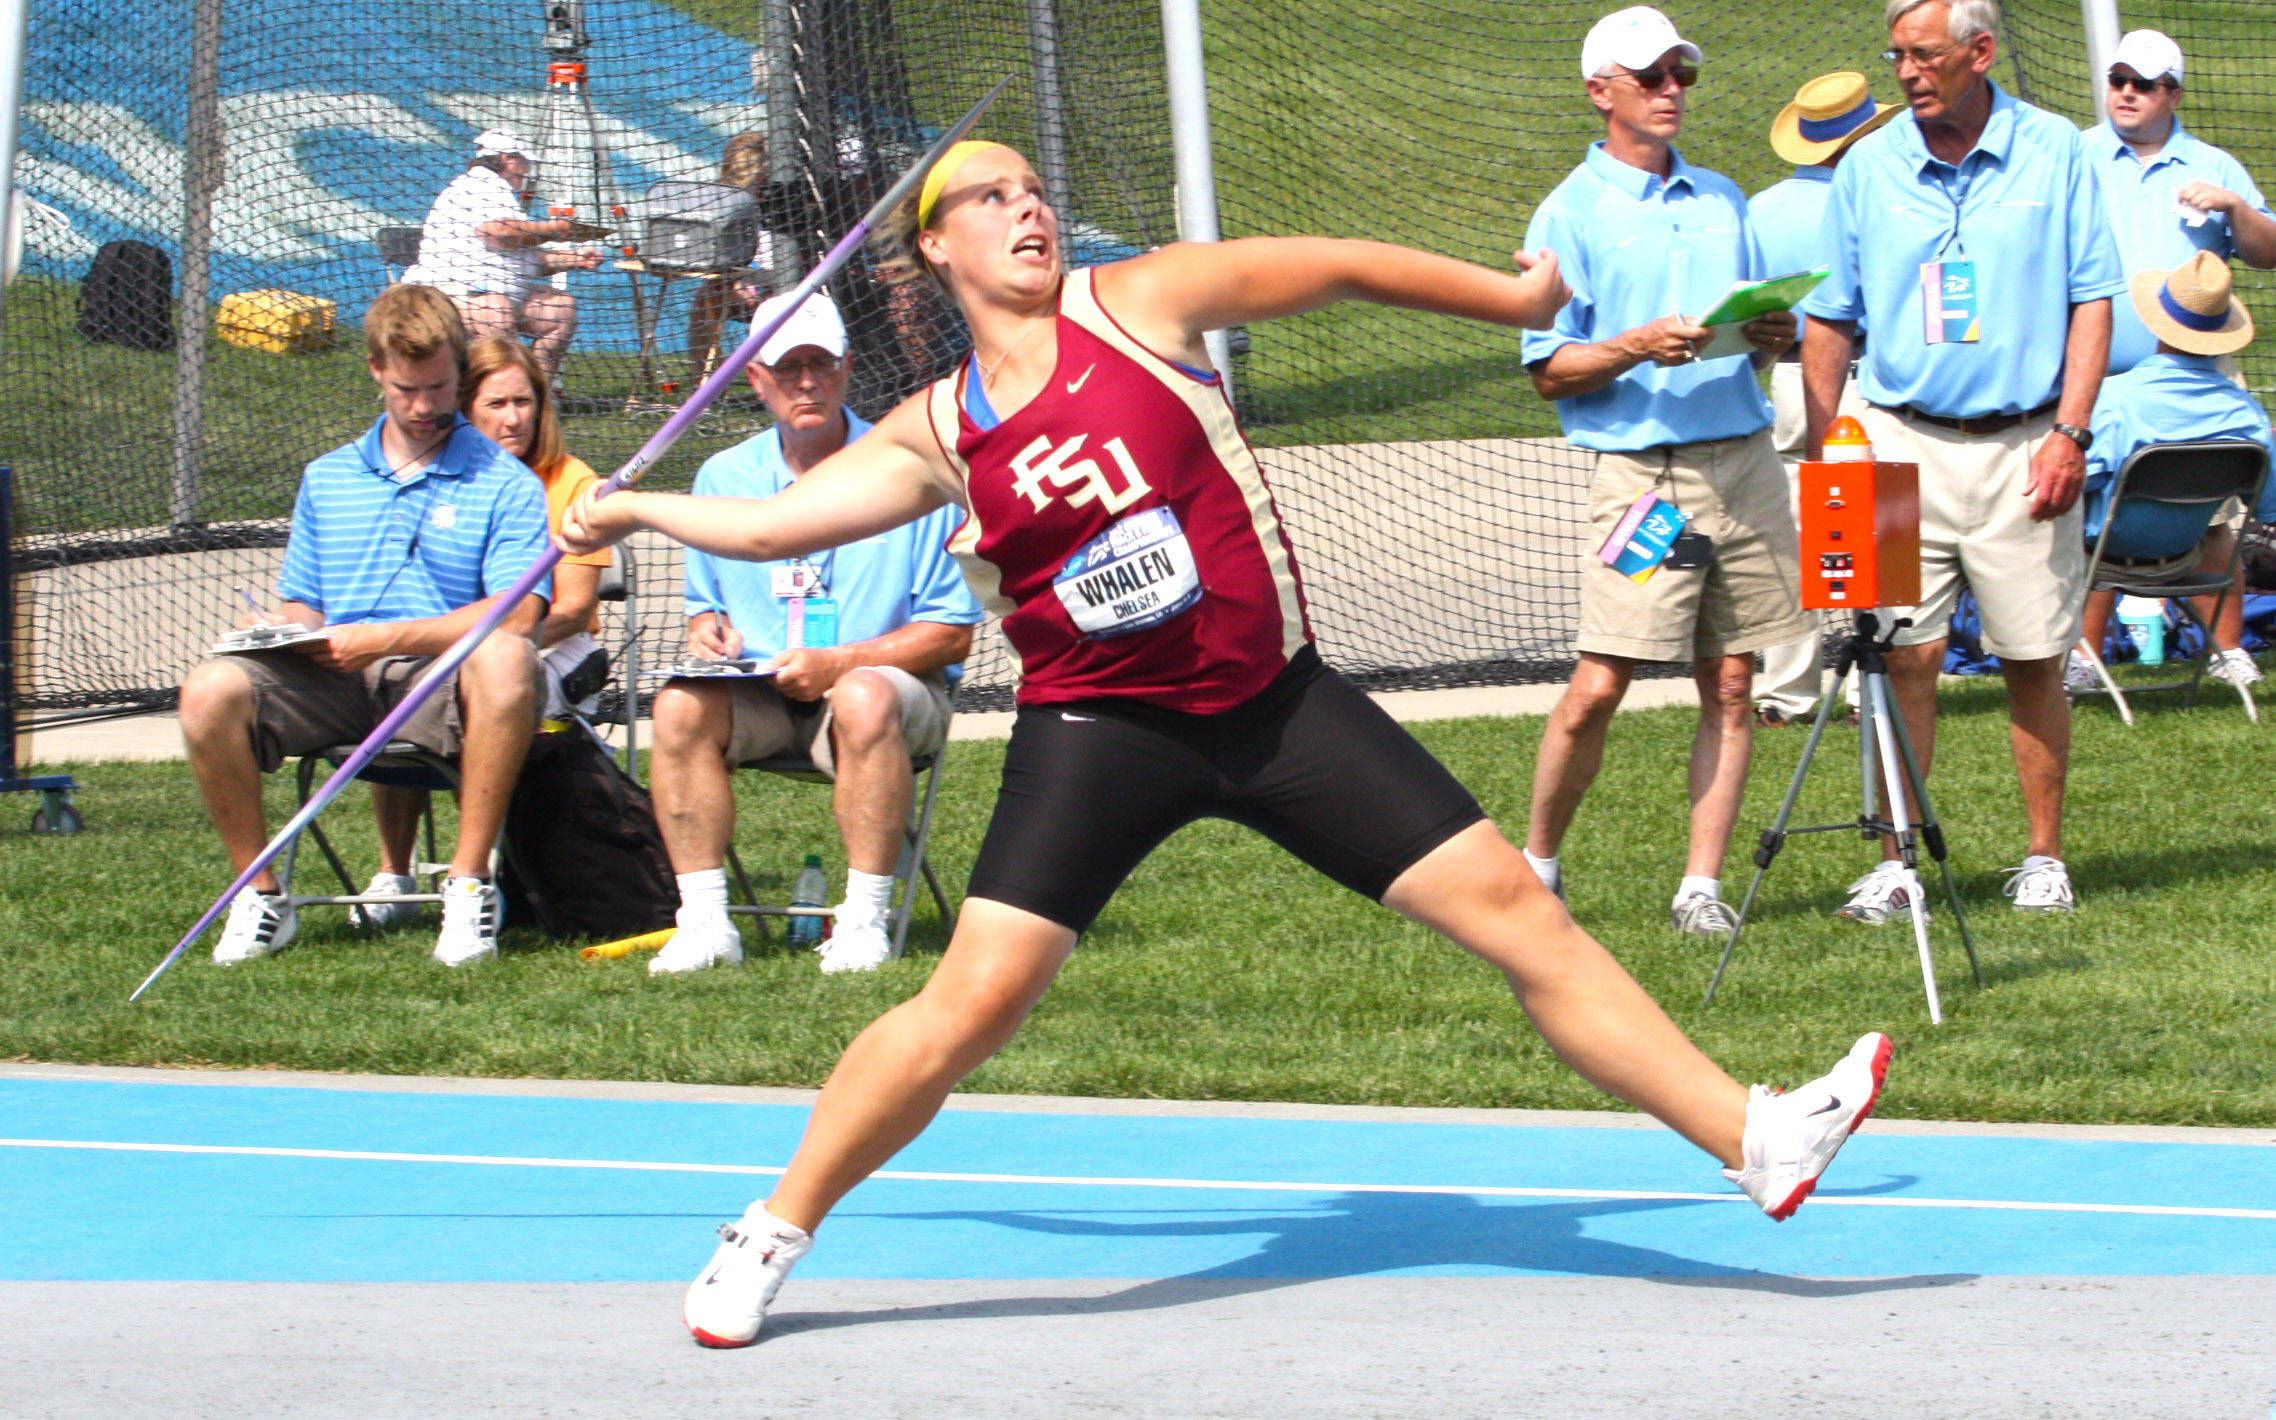 Chelsea Whalen cuts loose on her final throw in the javelin, good for a new PR of 47.44 meters at the NCAA Championship